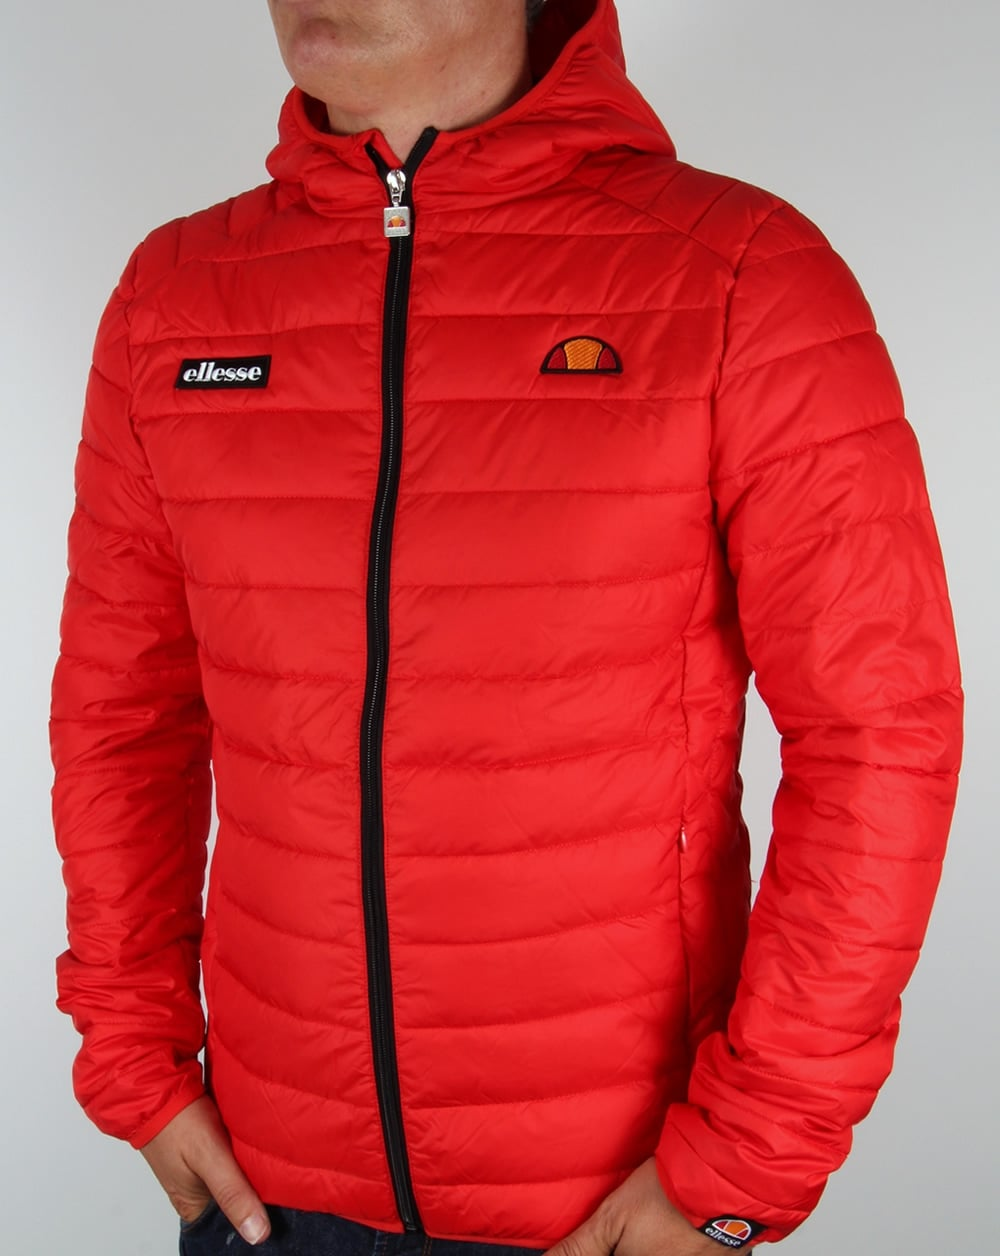 ellesse lombardy jacket red bubble padded puffer ski coat mens. Black Bedroom Furniture Sets. Home Design Ideas